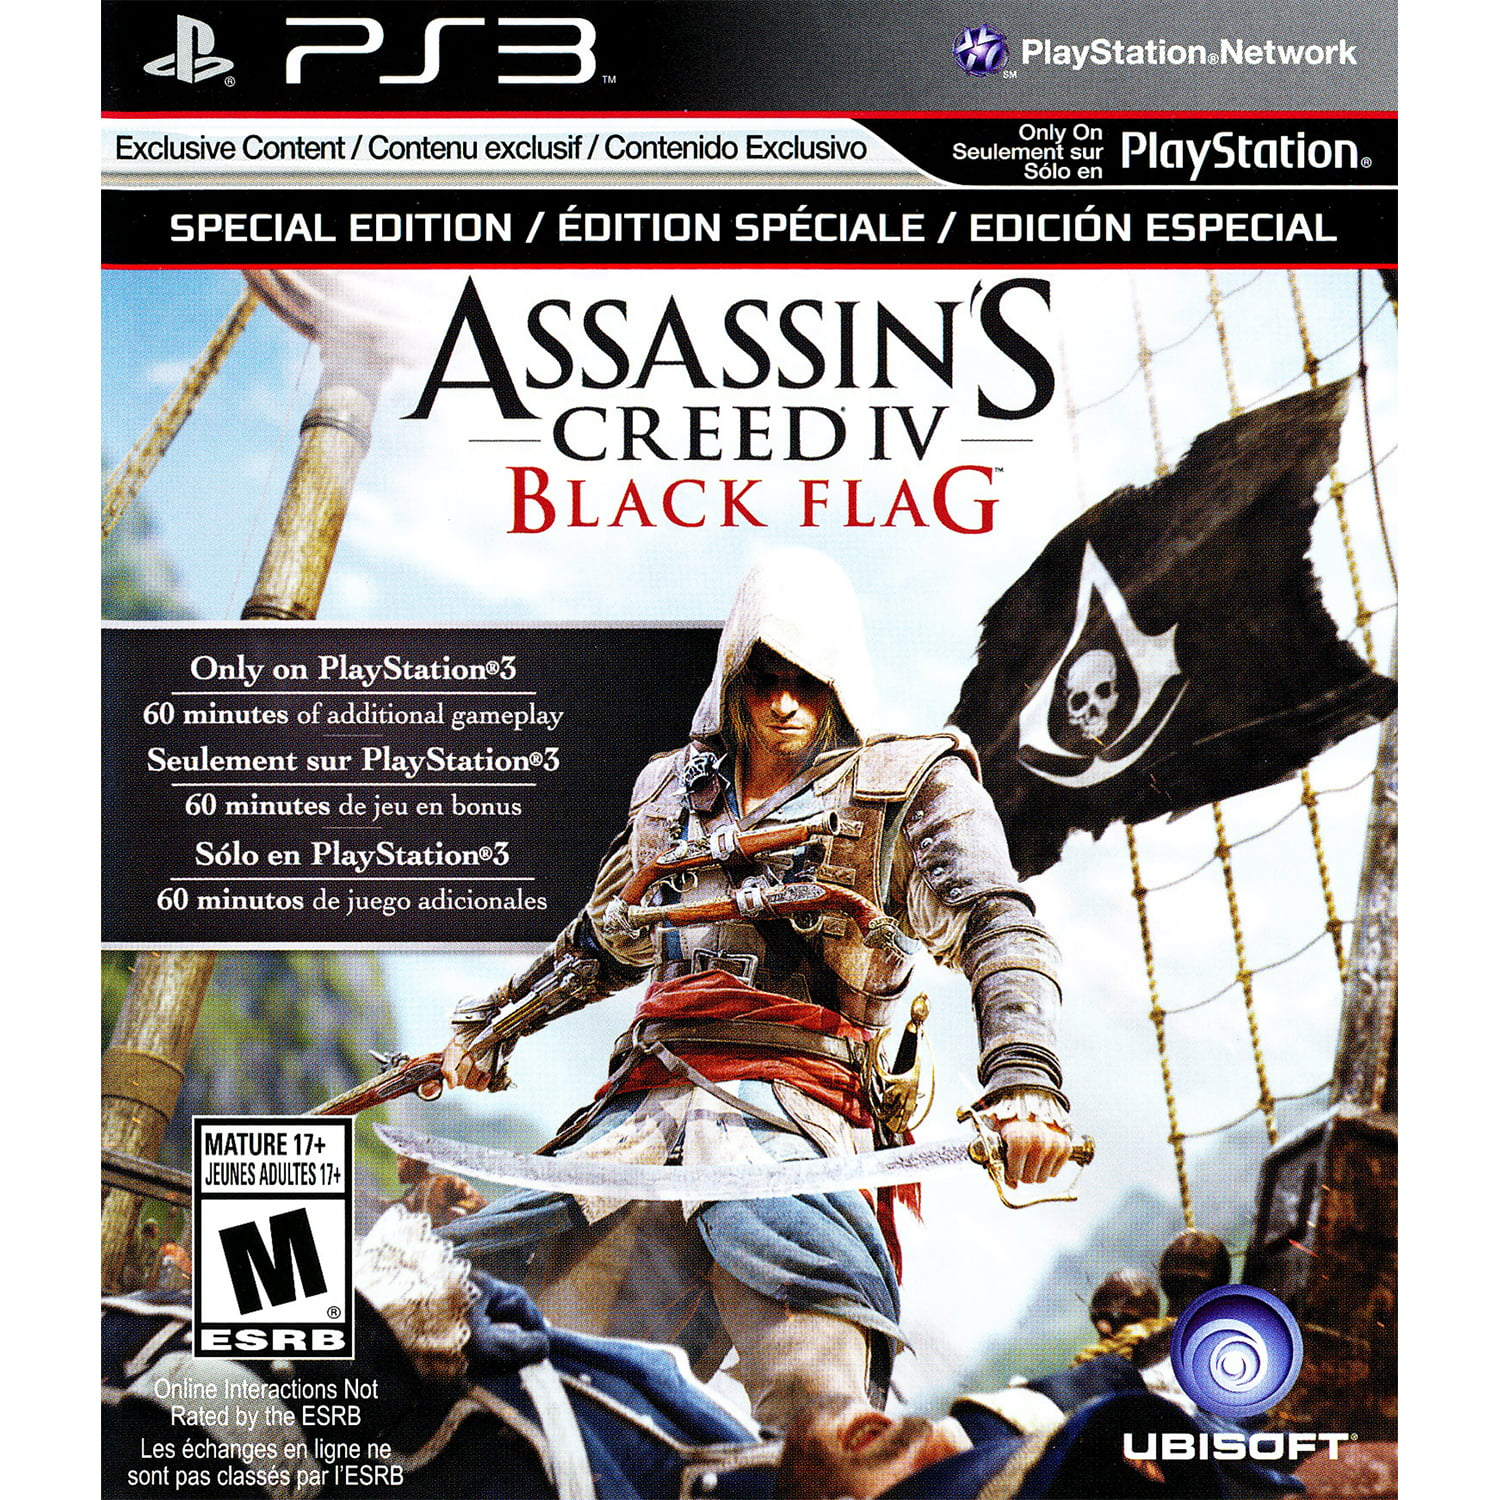 assassins creed black flag ps4 graphics